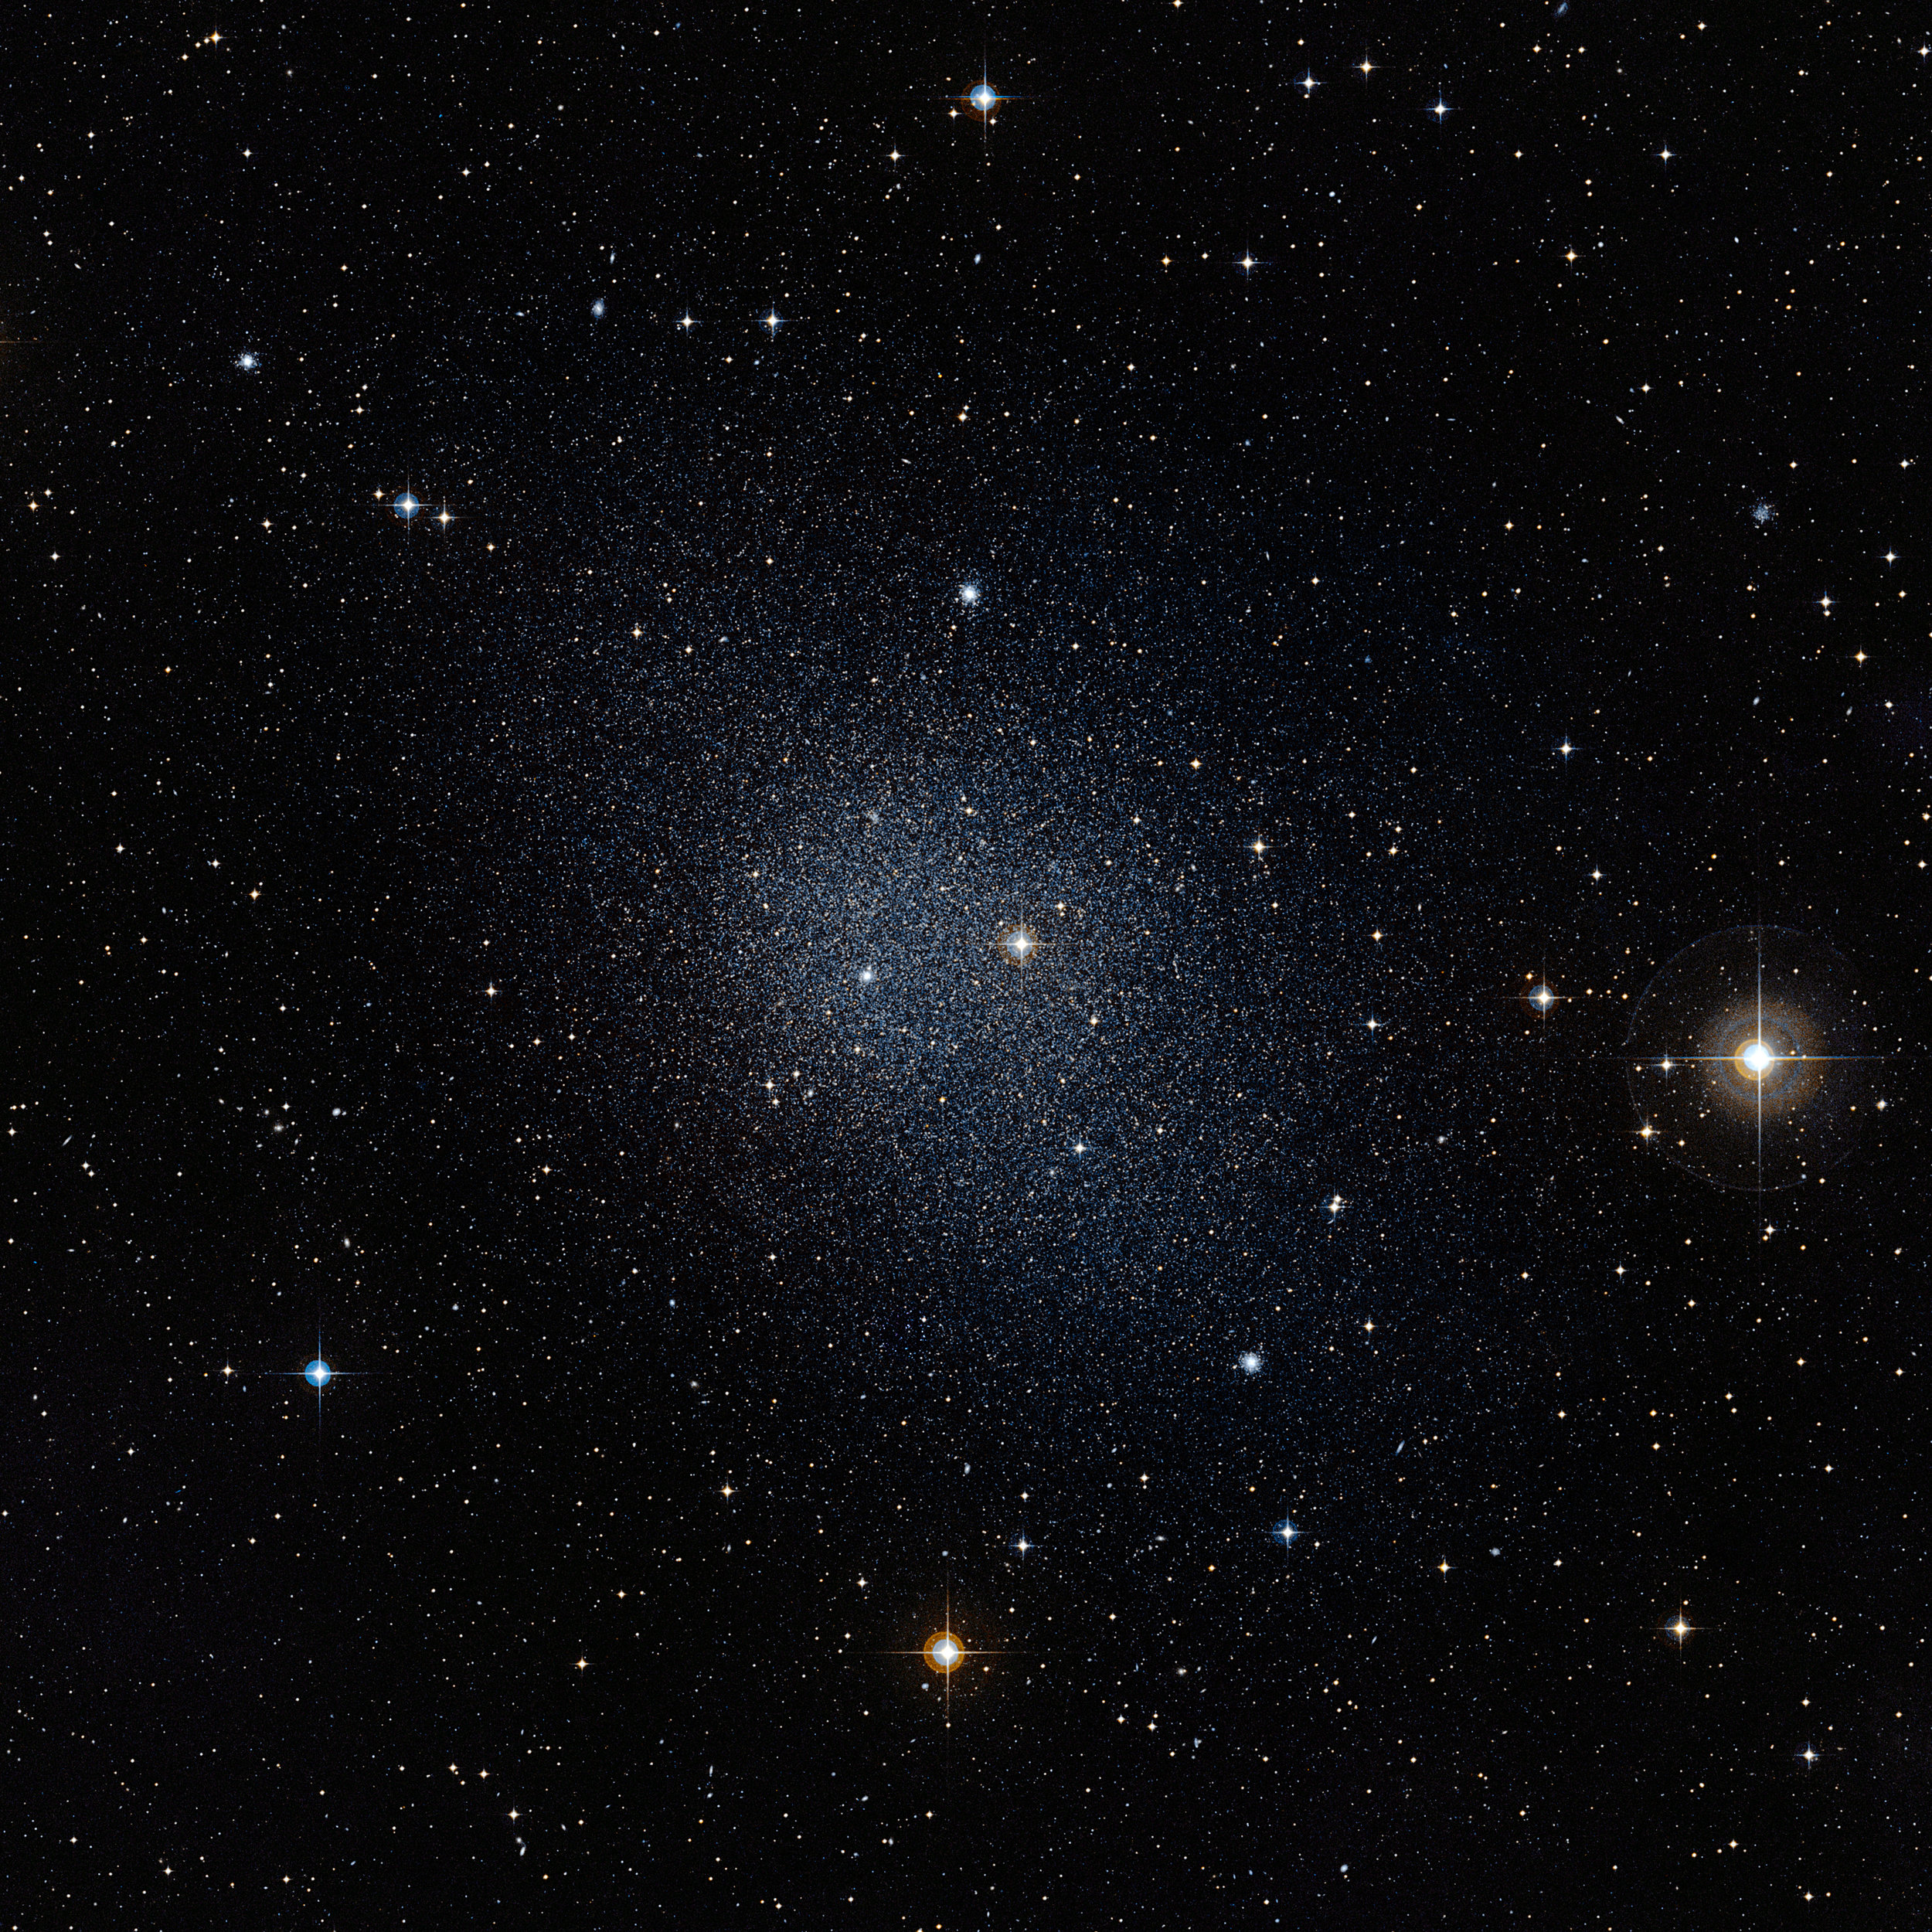 This dwarf spheroidal galaxy in the constellation Fornax is a satellite of our Milky Way and is one of 10 used in Fermi's dark matter search. The motions of the galaxy's stars indicate that it is embedded in a massive halo of matter that cannot be seen. Credits: ESO/Digital Sky Survey 2